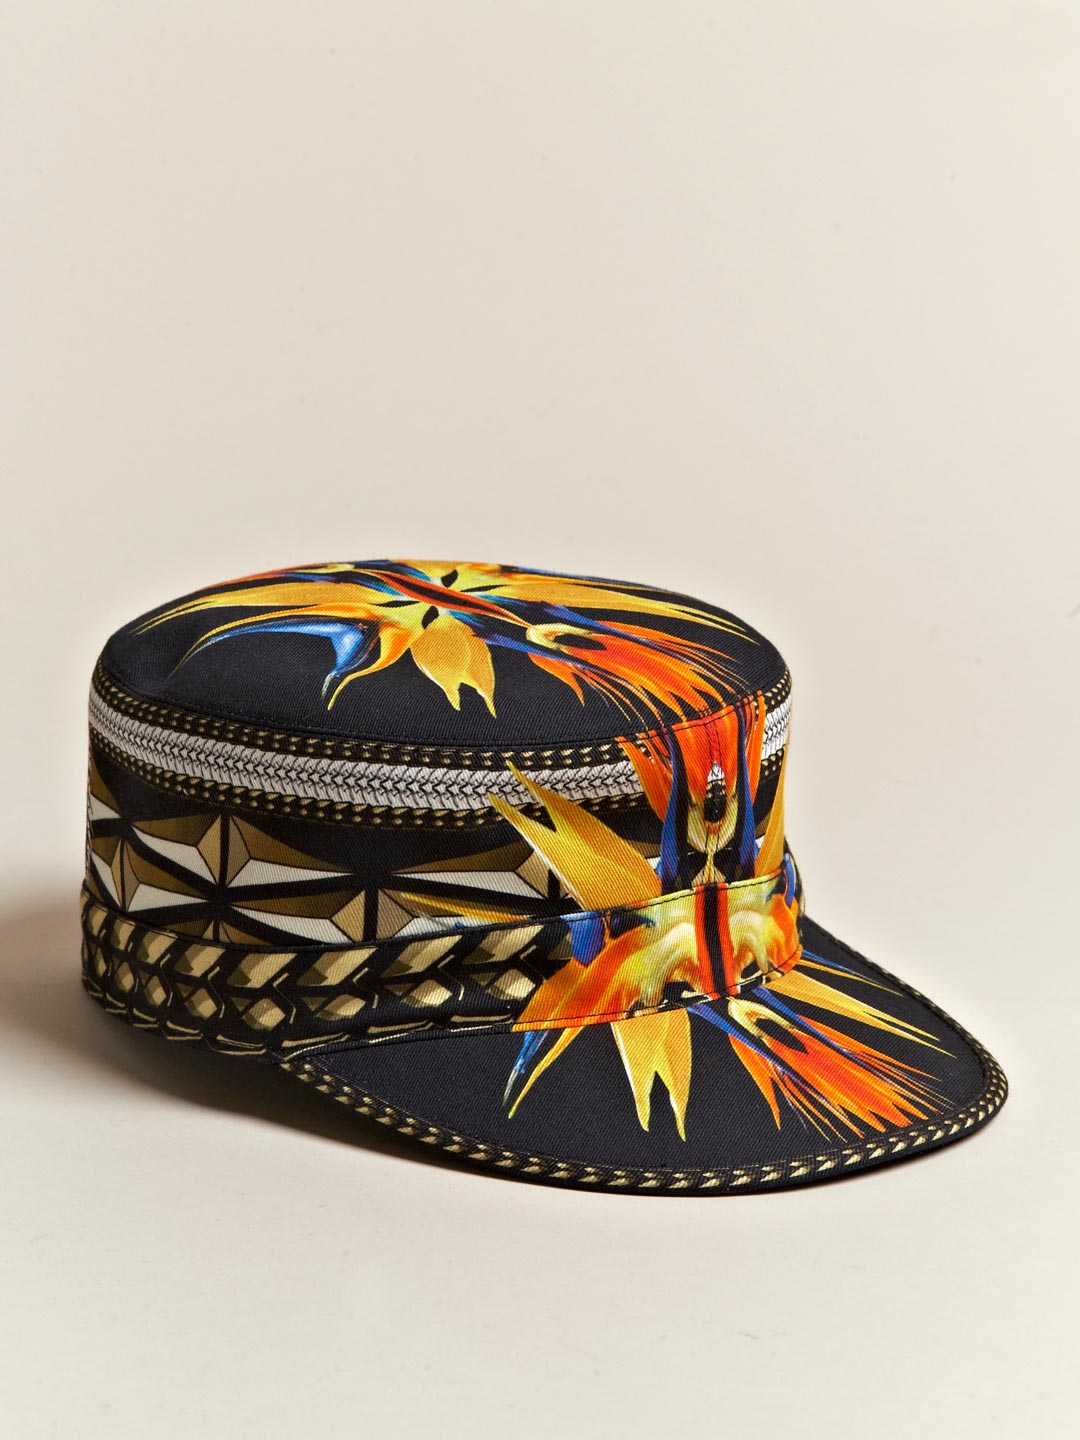 Givenchy SS 12 Womens Printed Hat